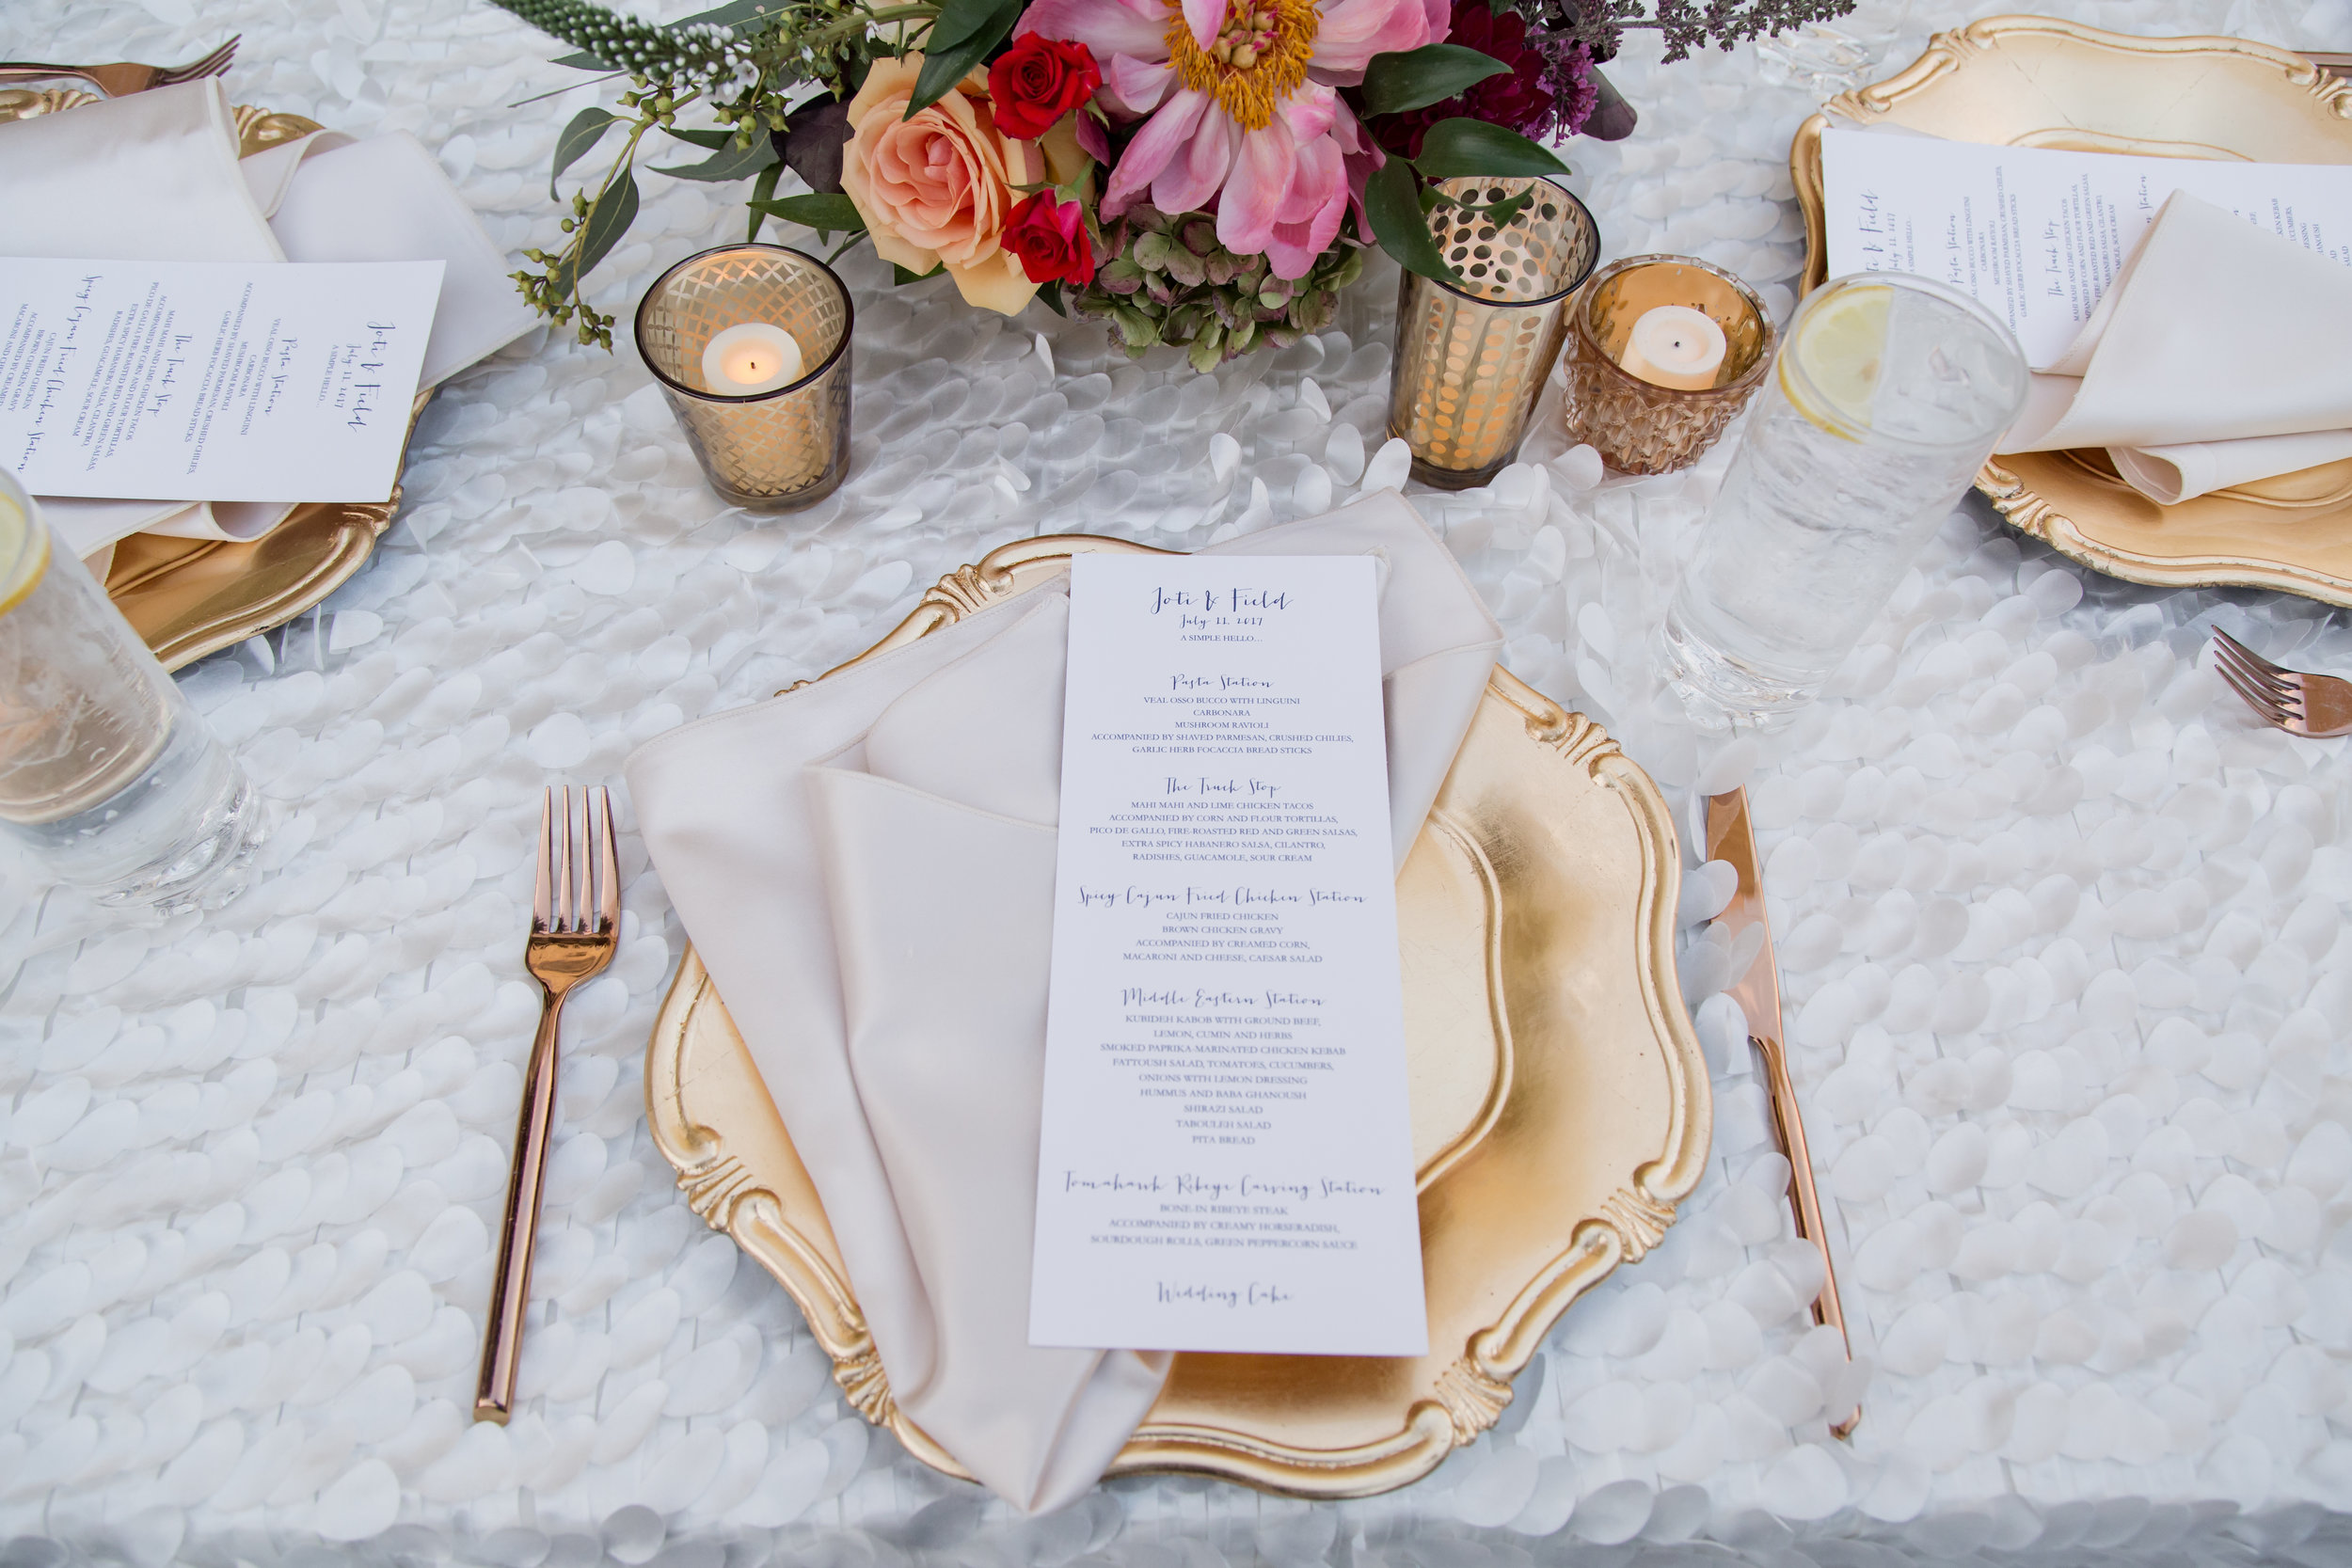 Gold place settings on white flutter linens with long menus and jewel toned florals.Destination Wedding Planner  Andrea Eppolito ·Photos by  Adam Frazier Photography ·Floral and Decor by  Destinations by Design · Lighting by  LED Unplugged ·Venue · Invitations  Ceci New York  · Menus by  Alligator Soup